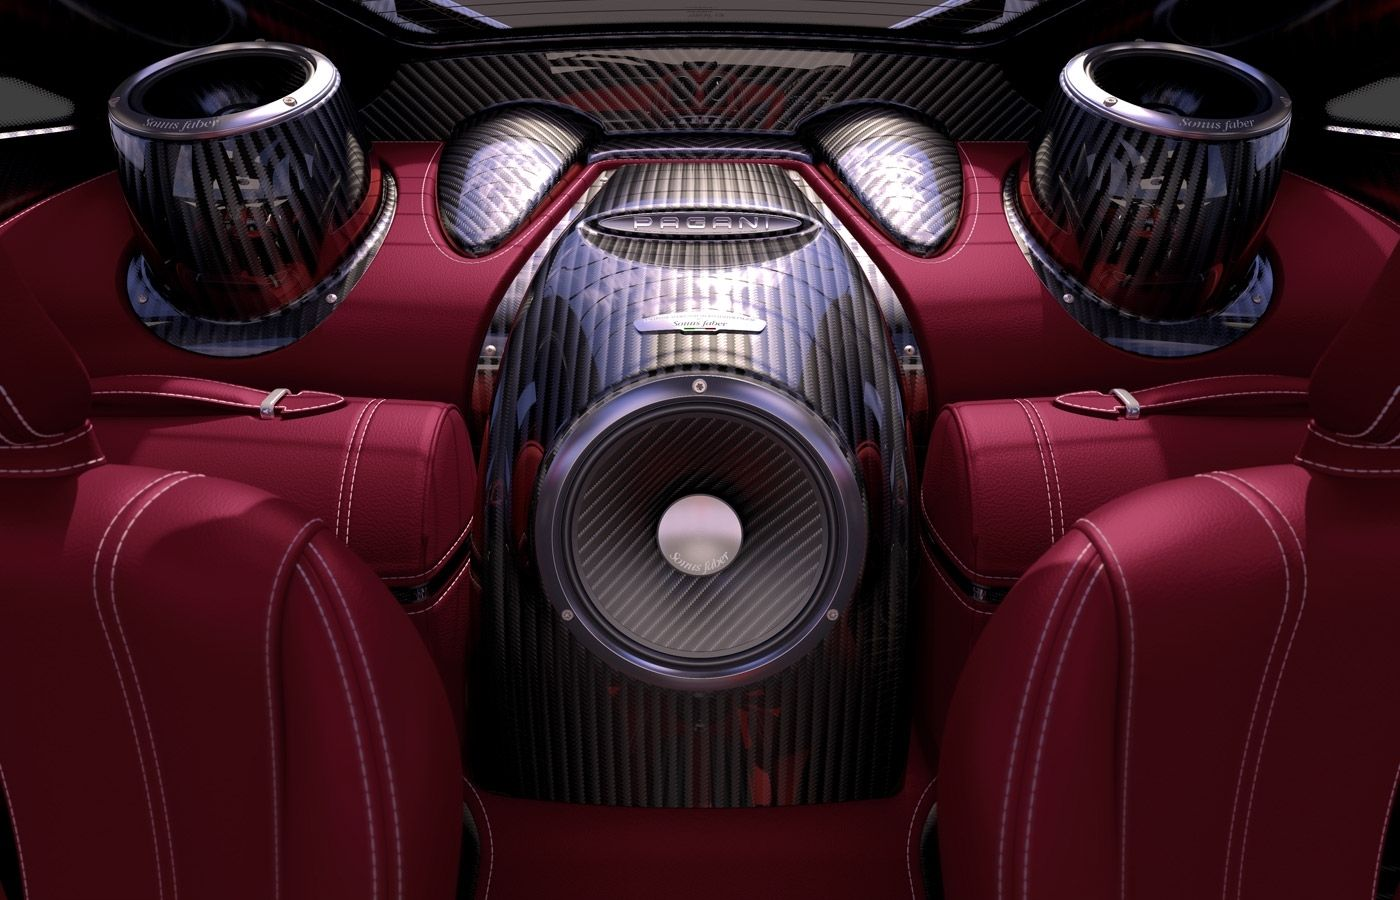 High End Car Speakers By Sonus Faber Complete Car Audio System